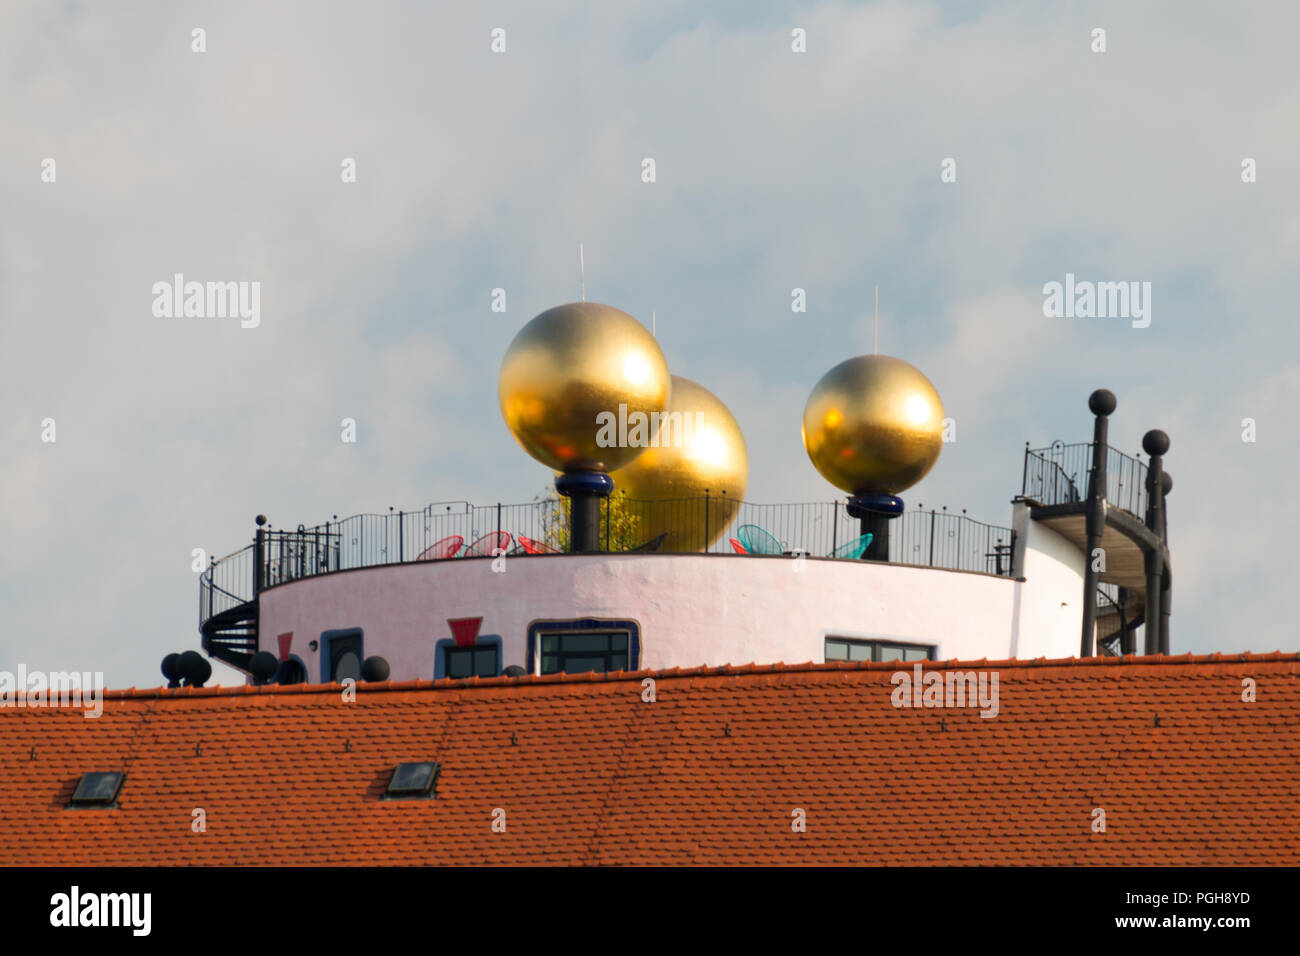 Magdeburg, Germany - August 17, 2018: View of the golden balls of the Hunderwasserhause Grüne Zitadelle in Magdeburg, Germany. Stock Photo